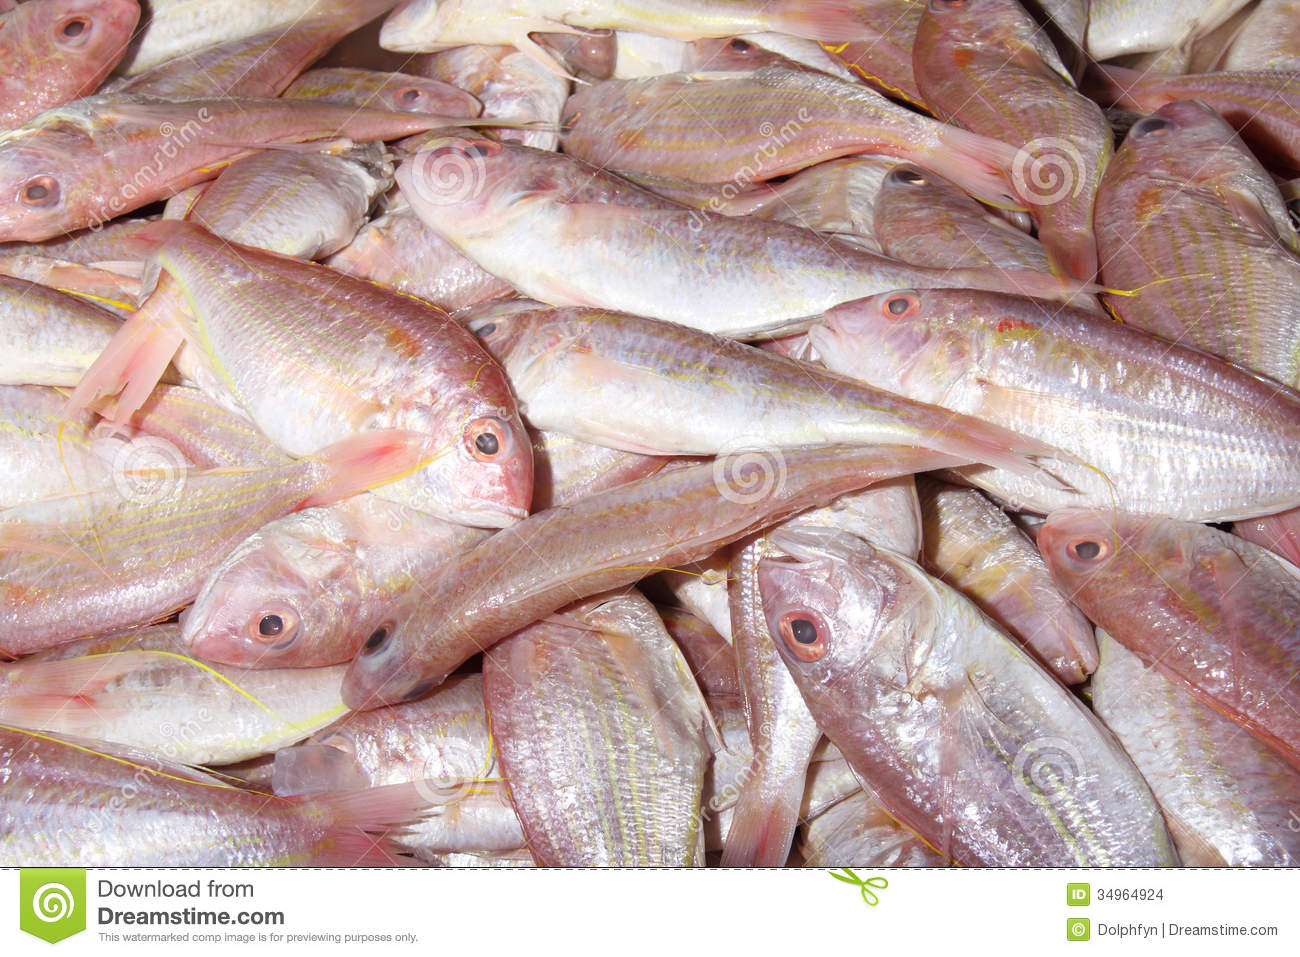 how to sell fish to markets